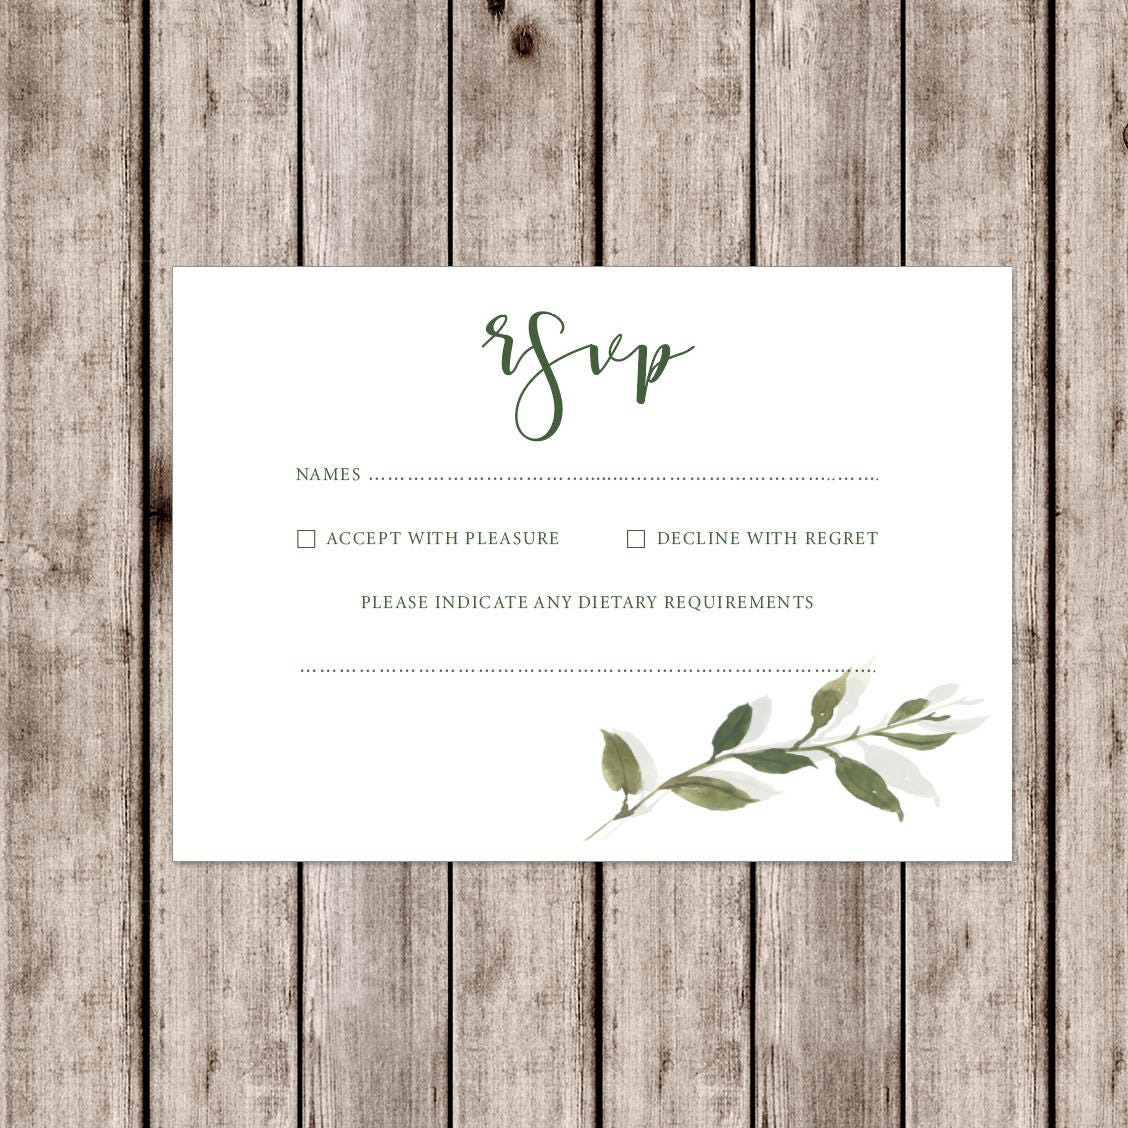 Sophisticated Somerset wedding invitations with leaf detail and